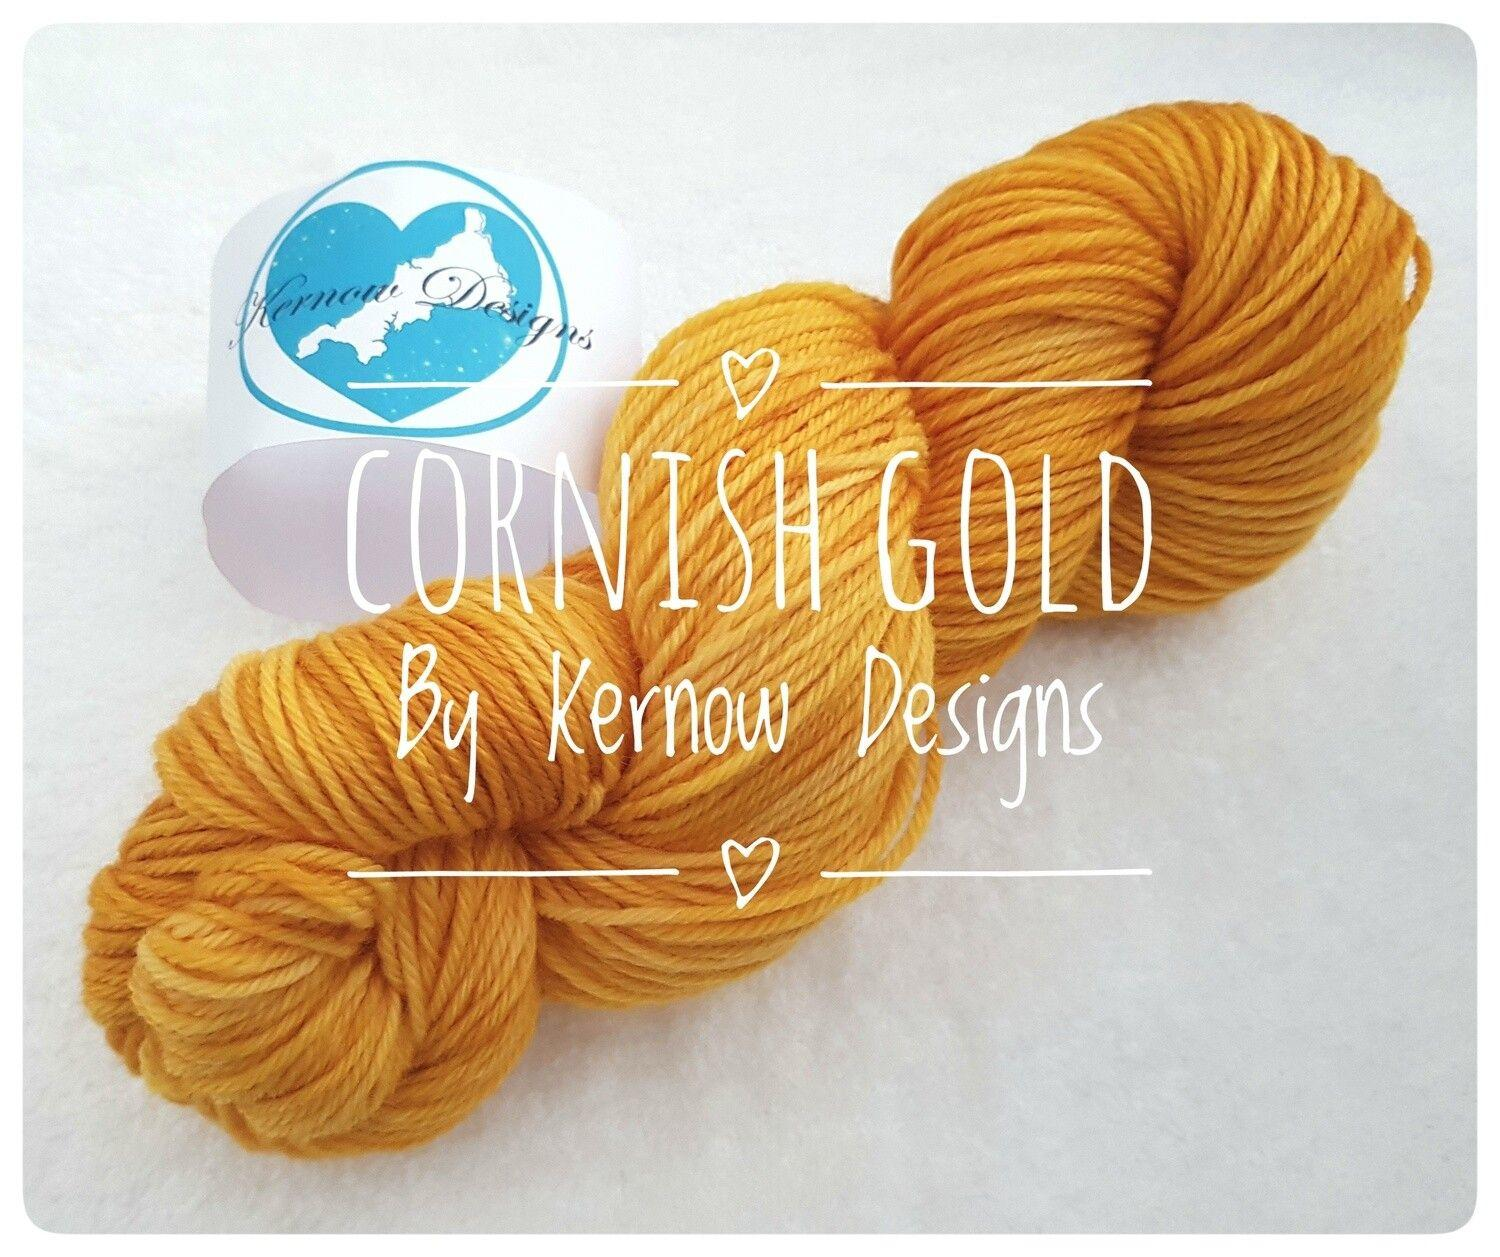 Cornish Gold Hand Dyed Yarn